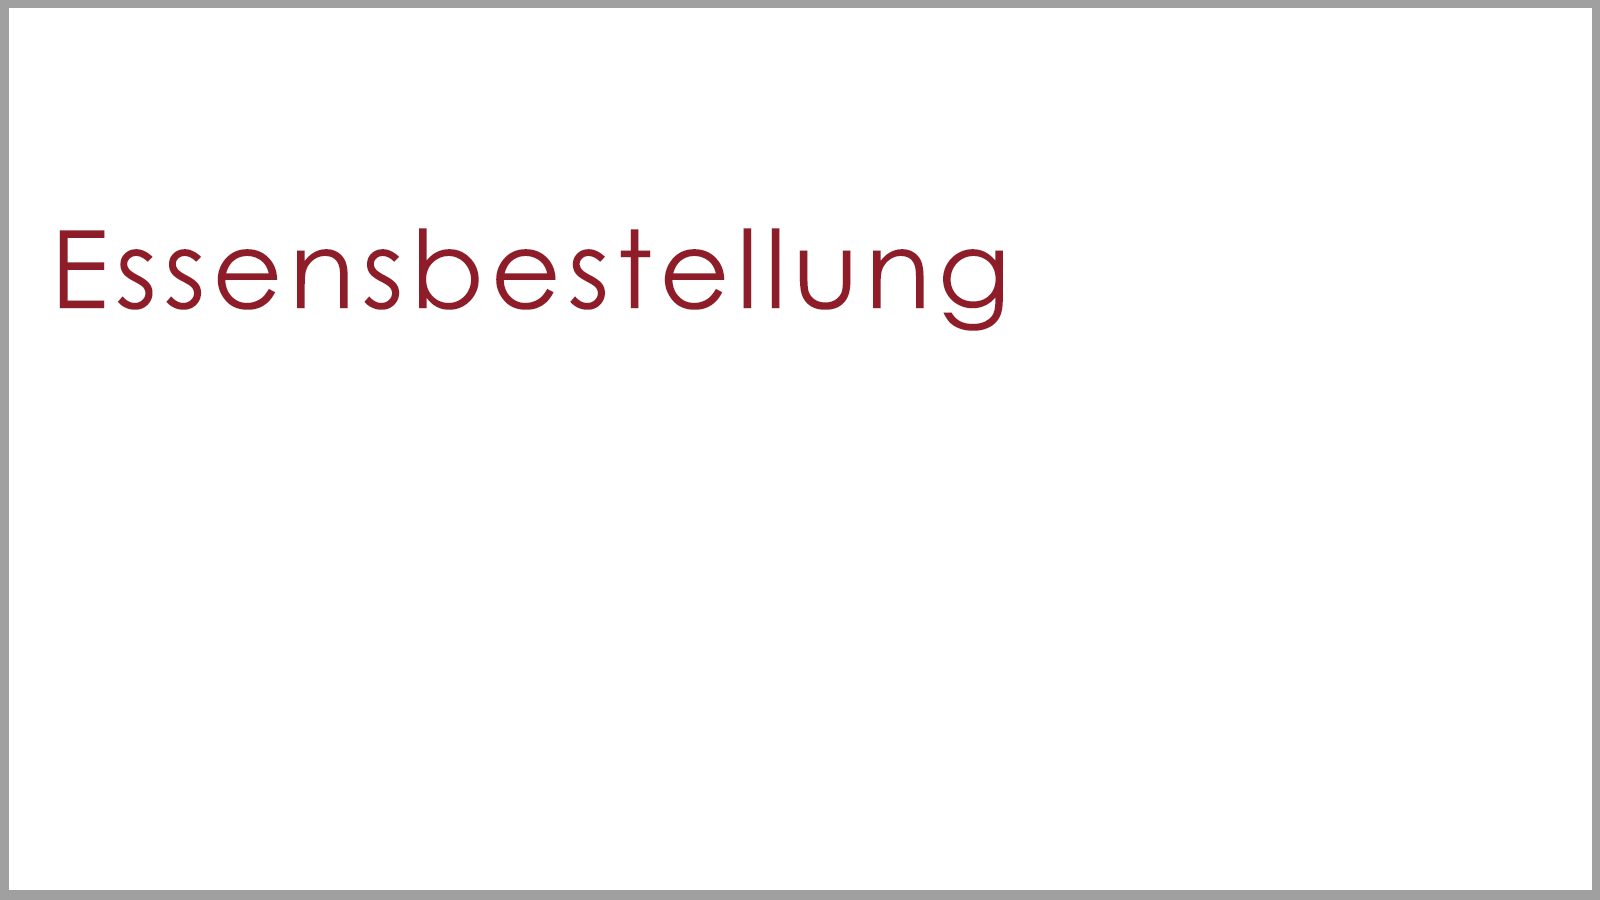 Essensbestellung